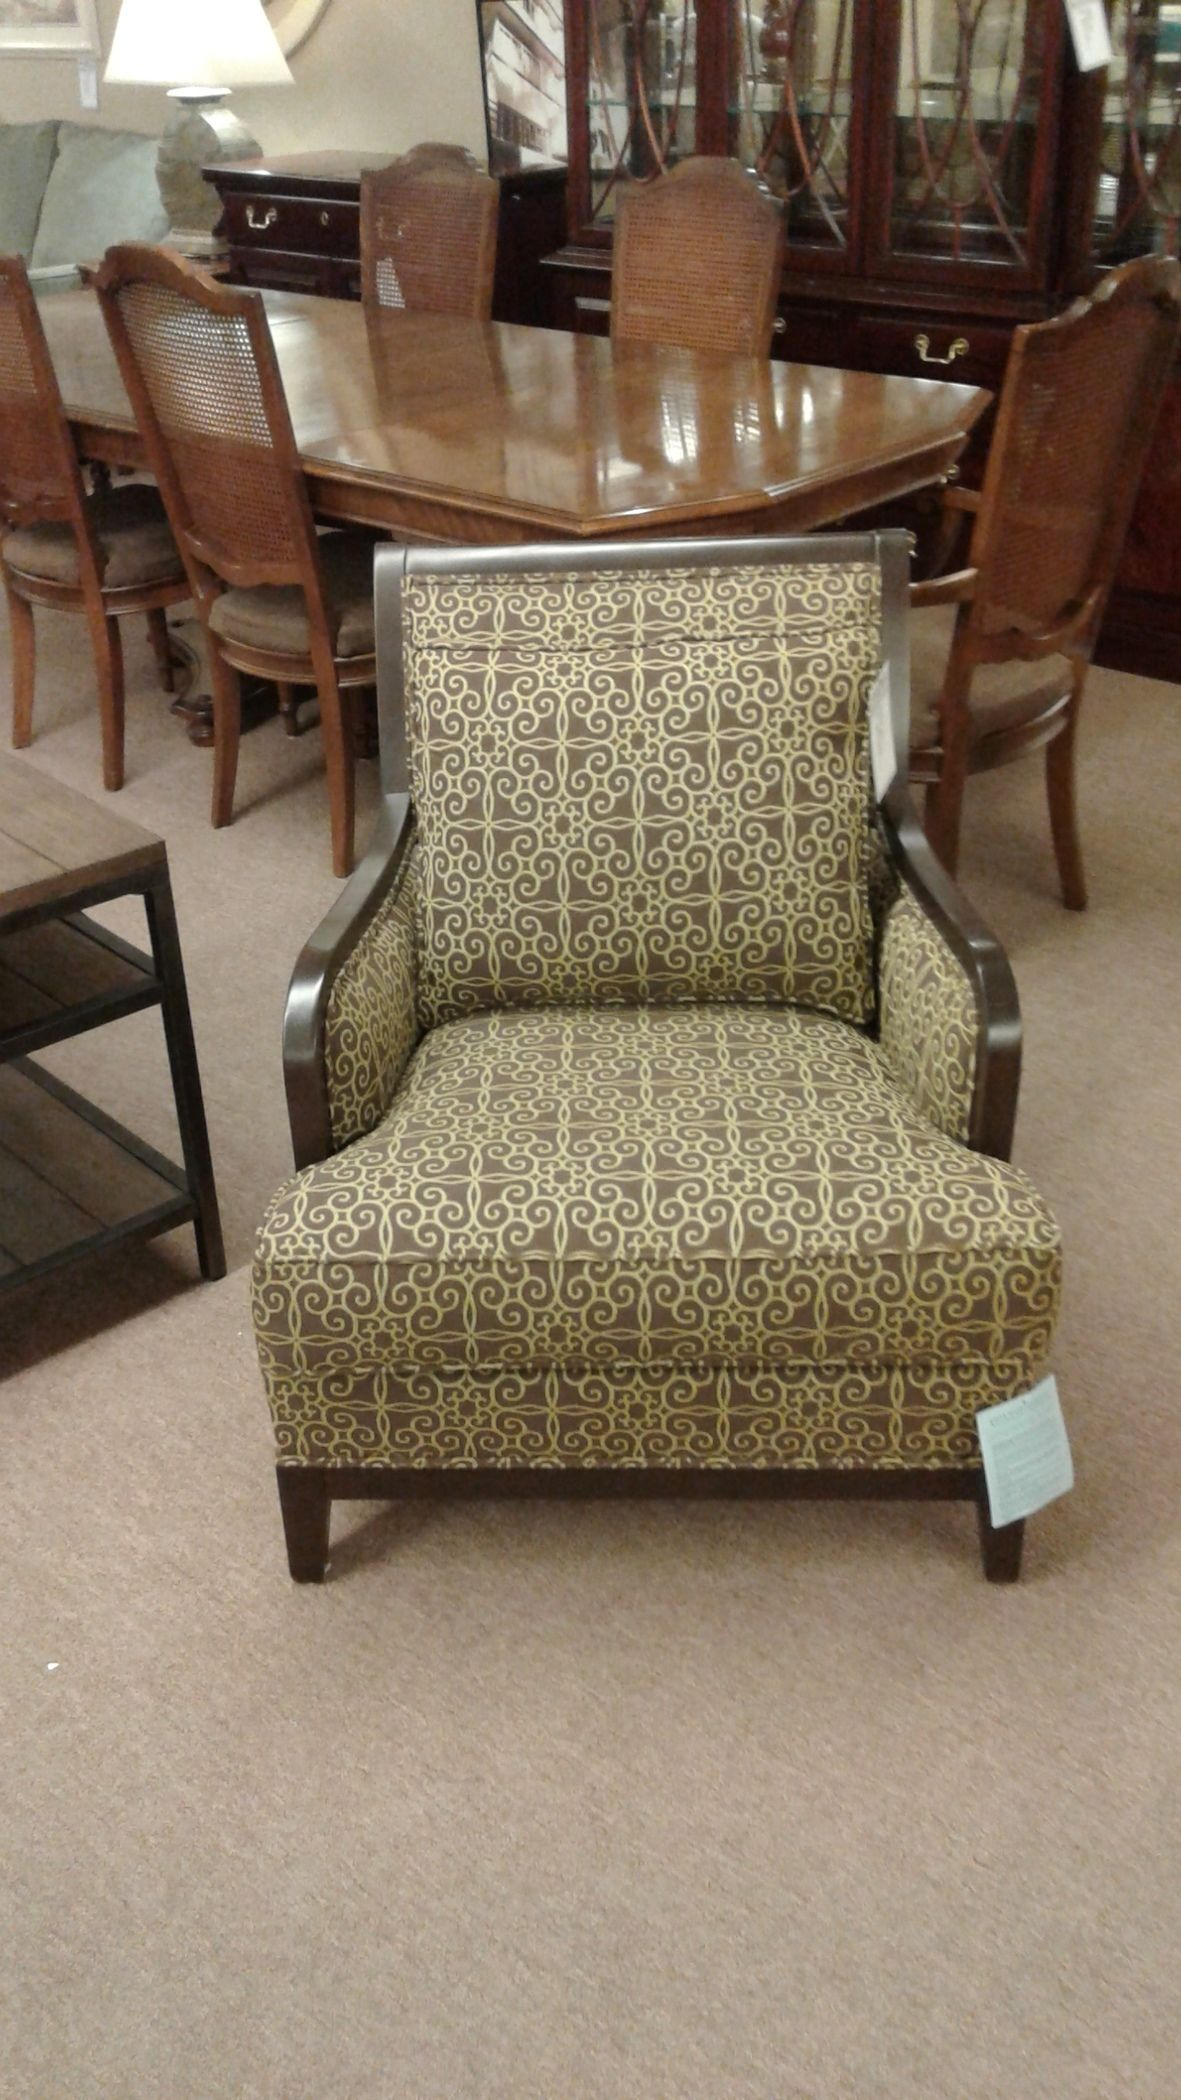 Ethan Allen Accent Chair Delmarva Furniture Consignment